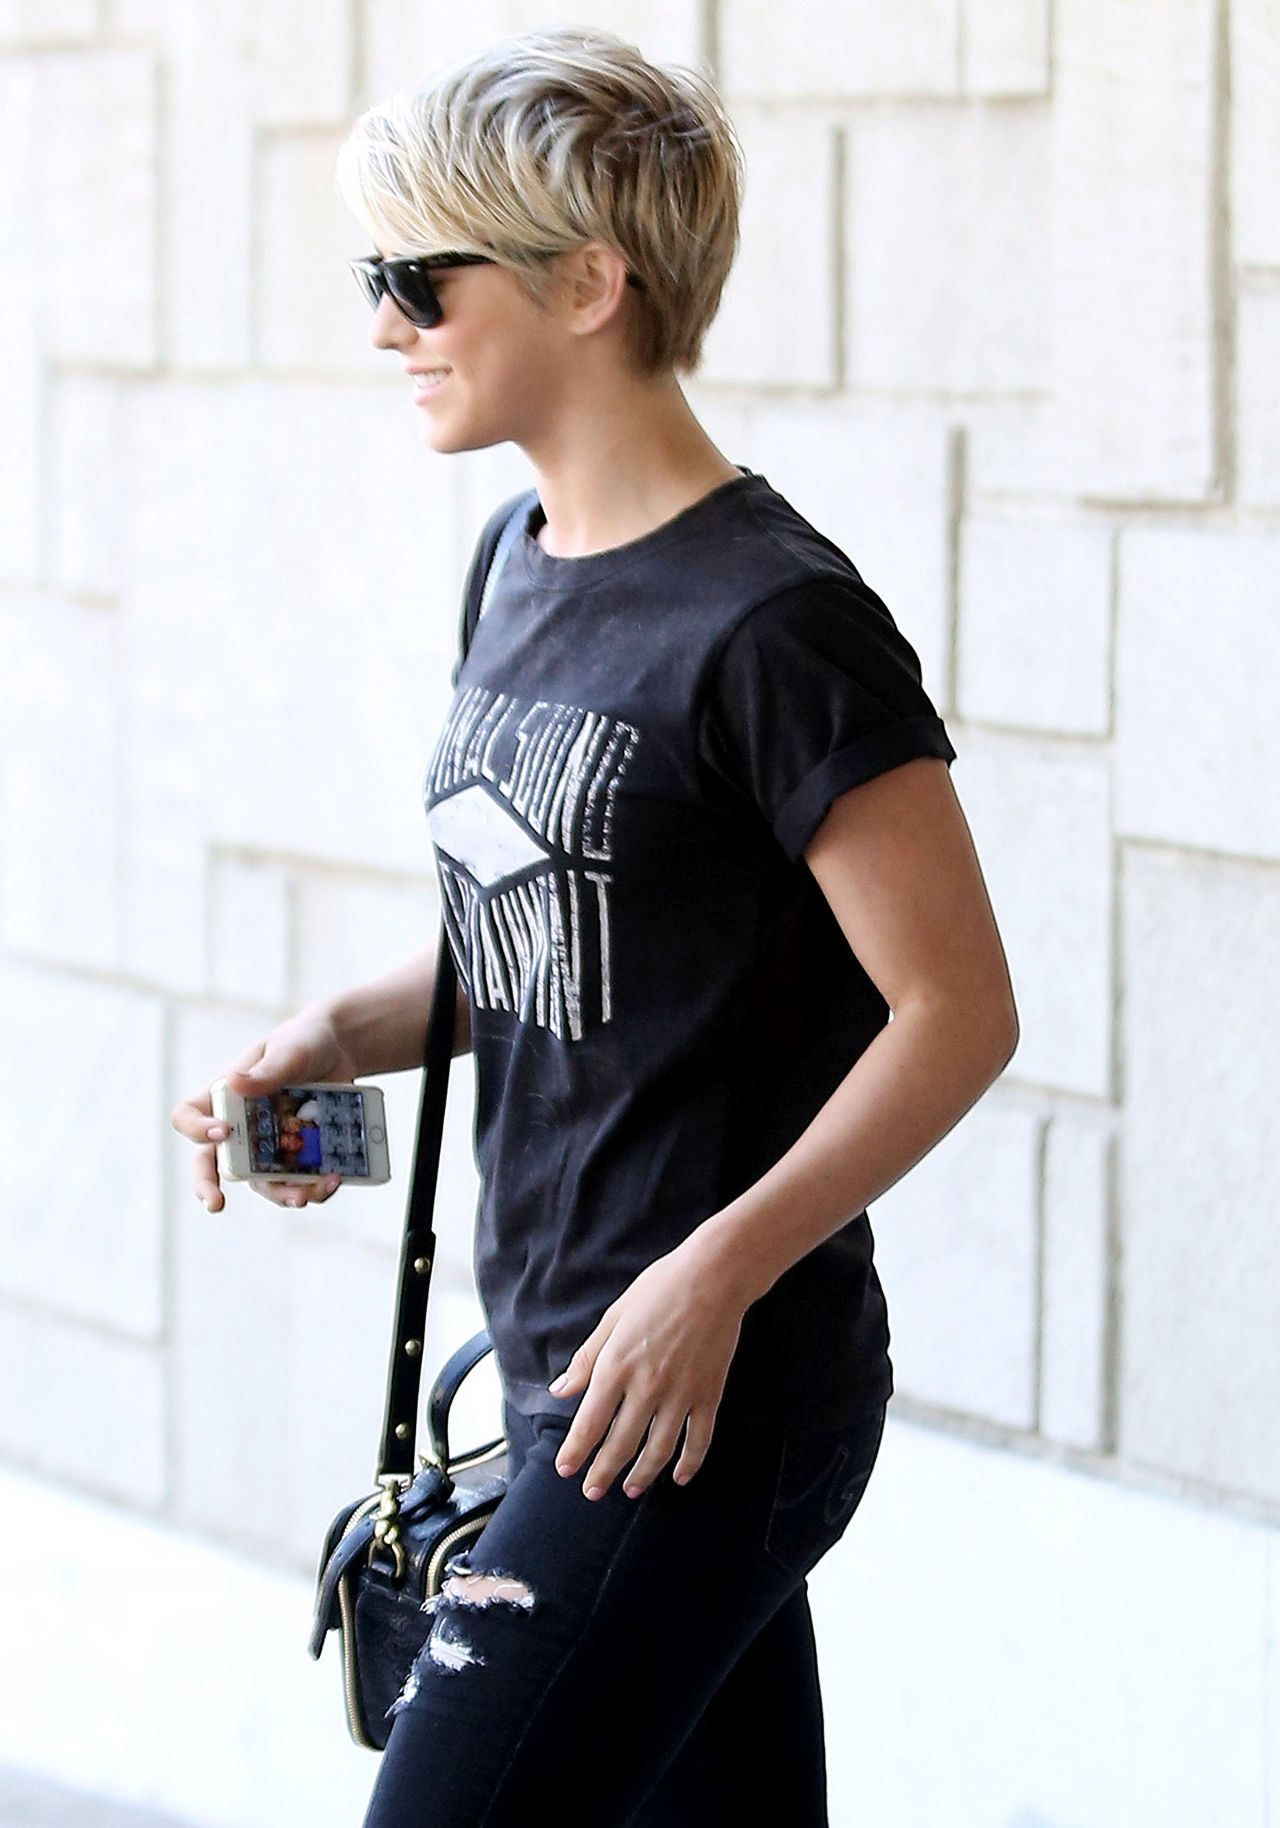 Julianne Hough - Leaves Salon After Getting a Hair Trim - March 2014